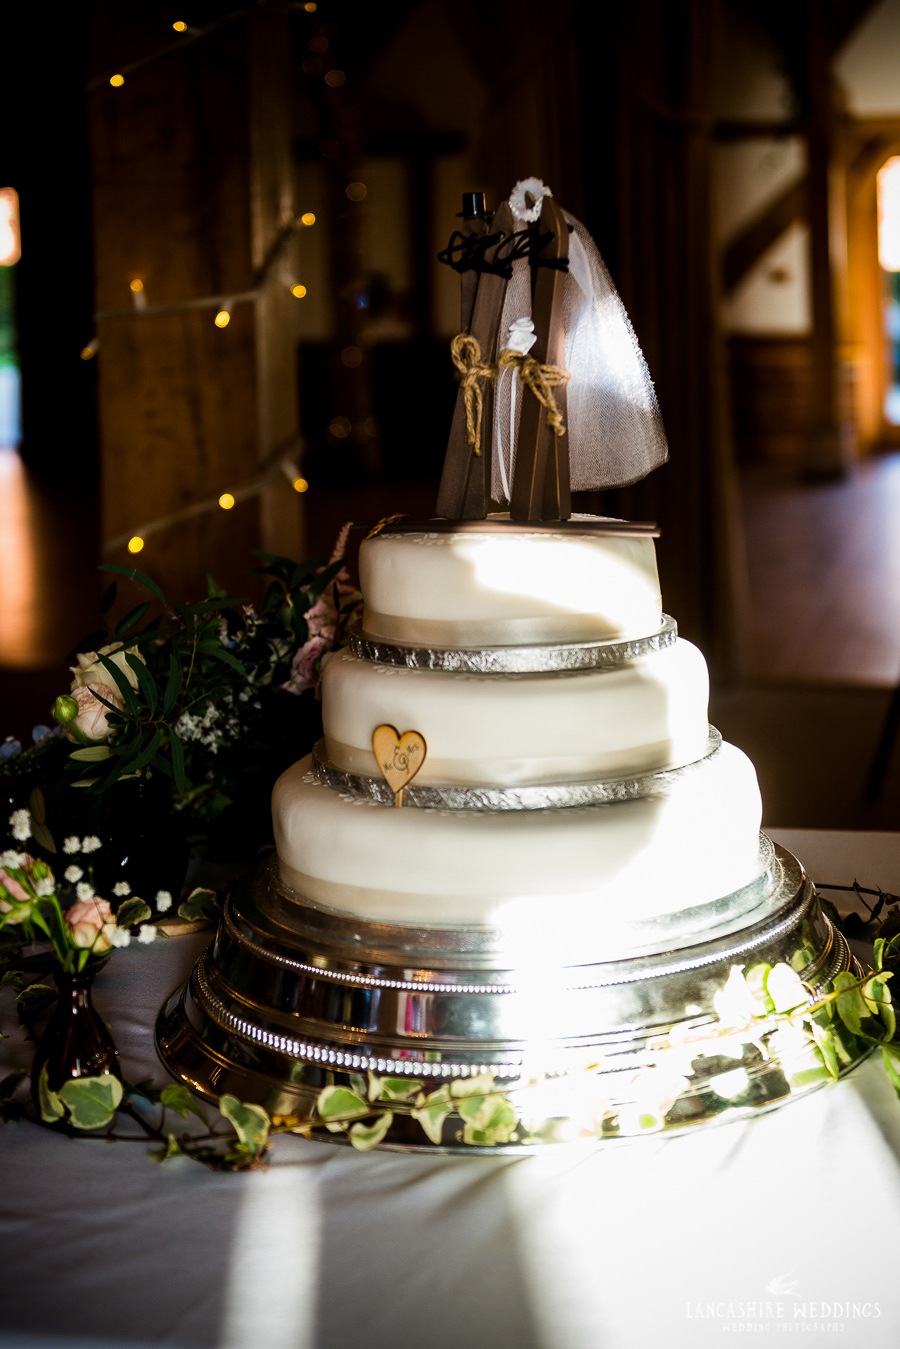 Wedding cake with ski's on top!